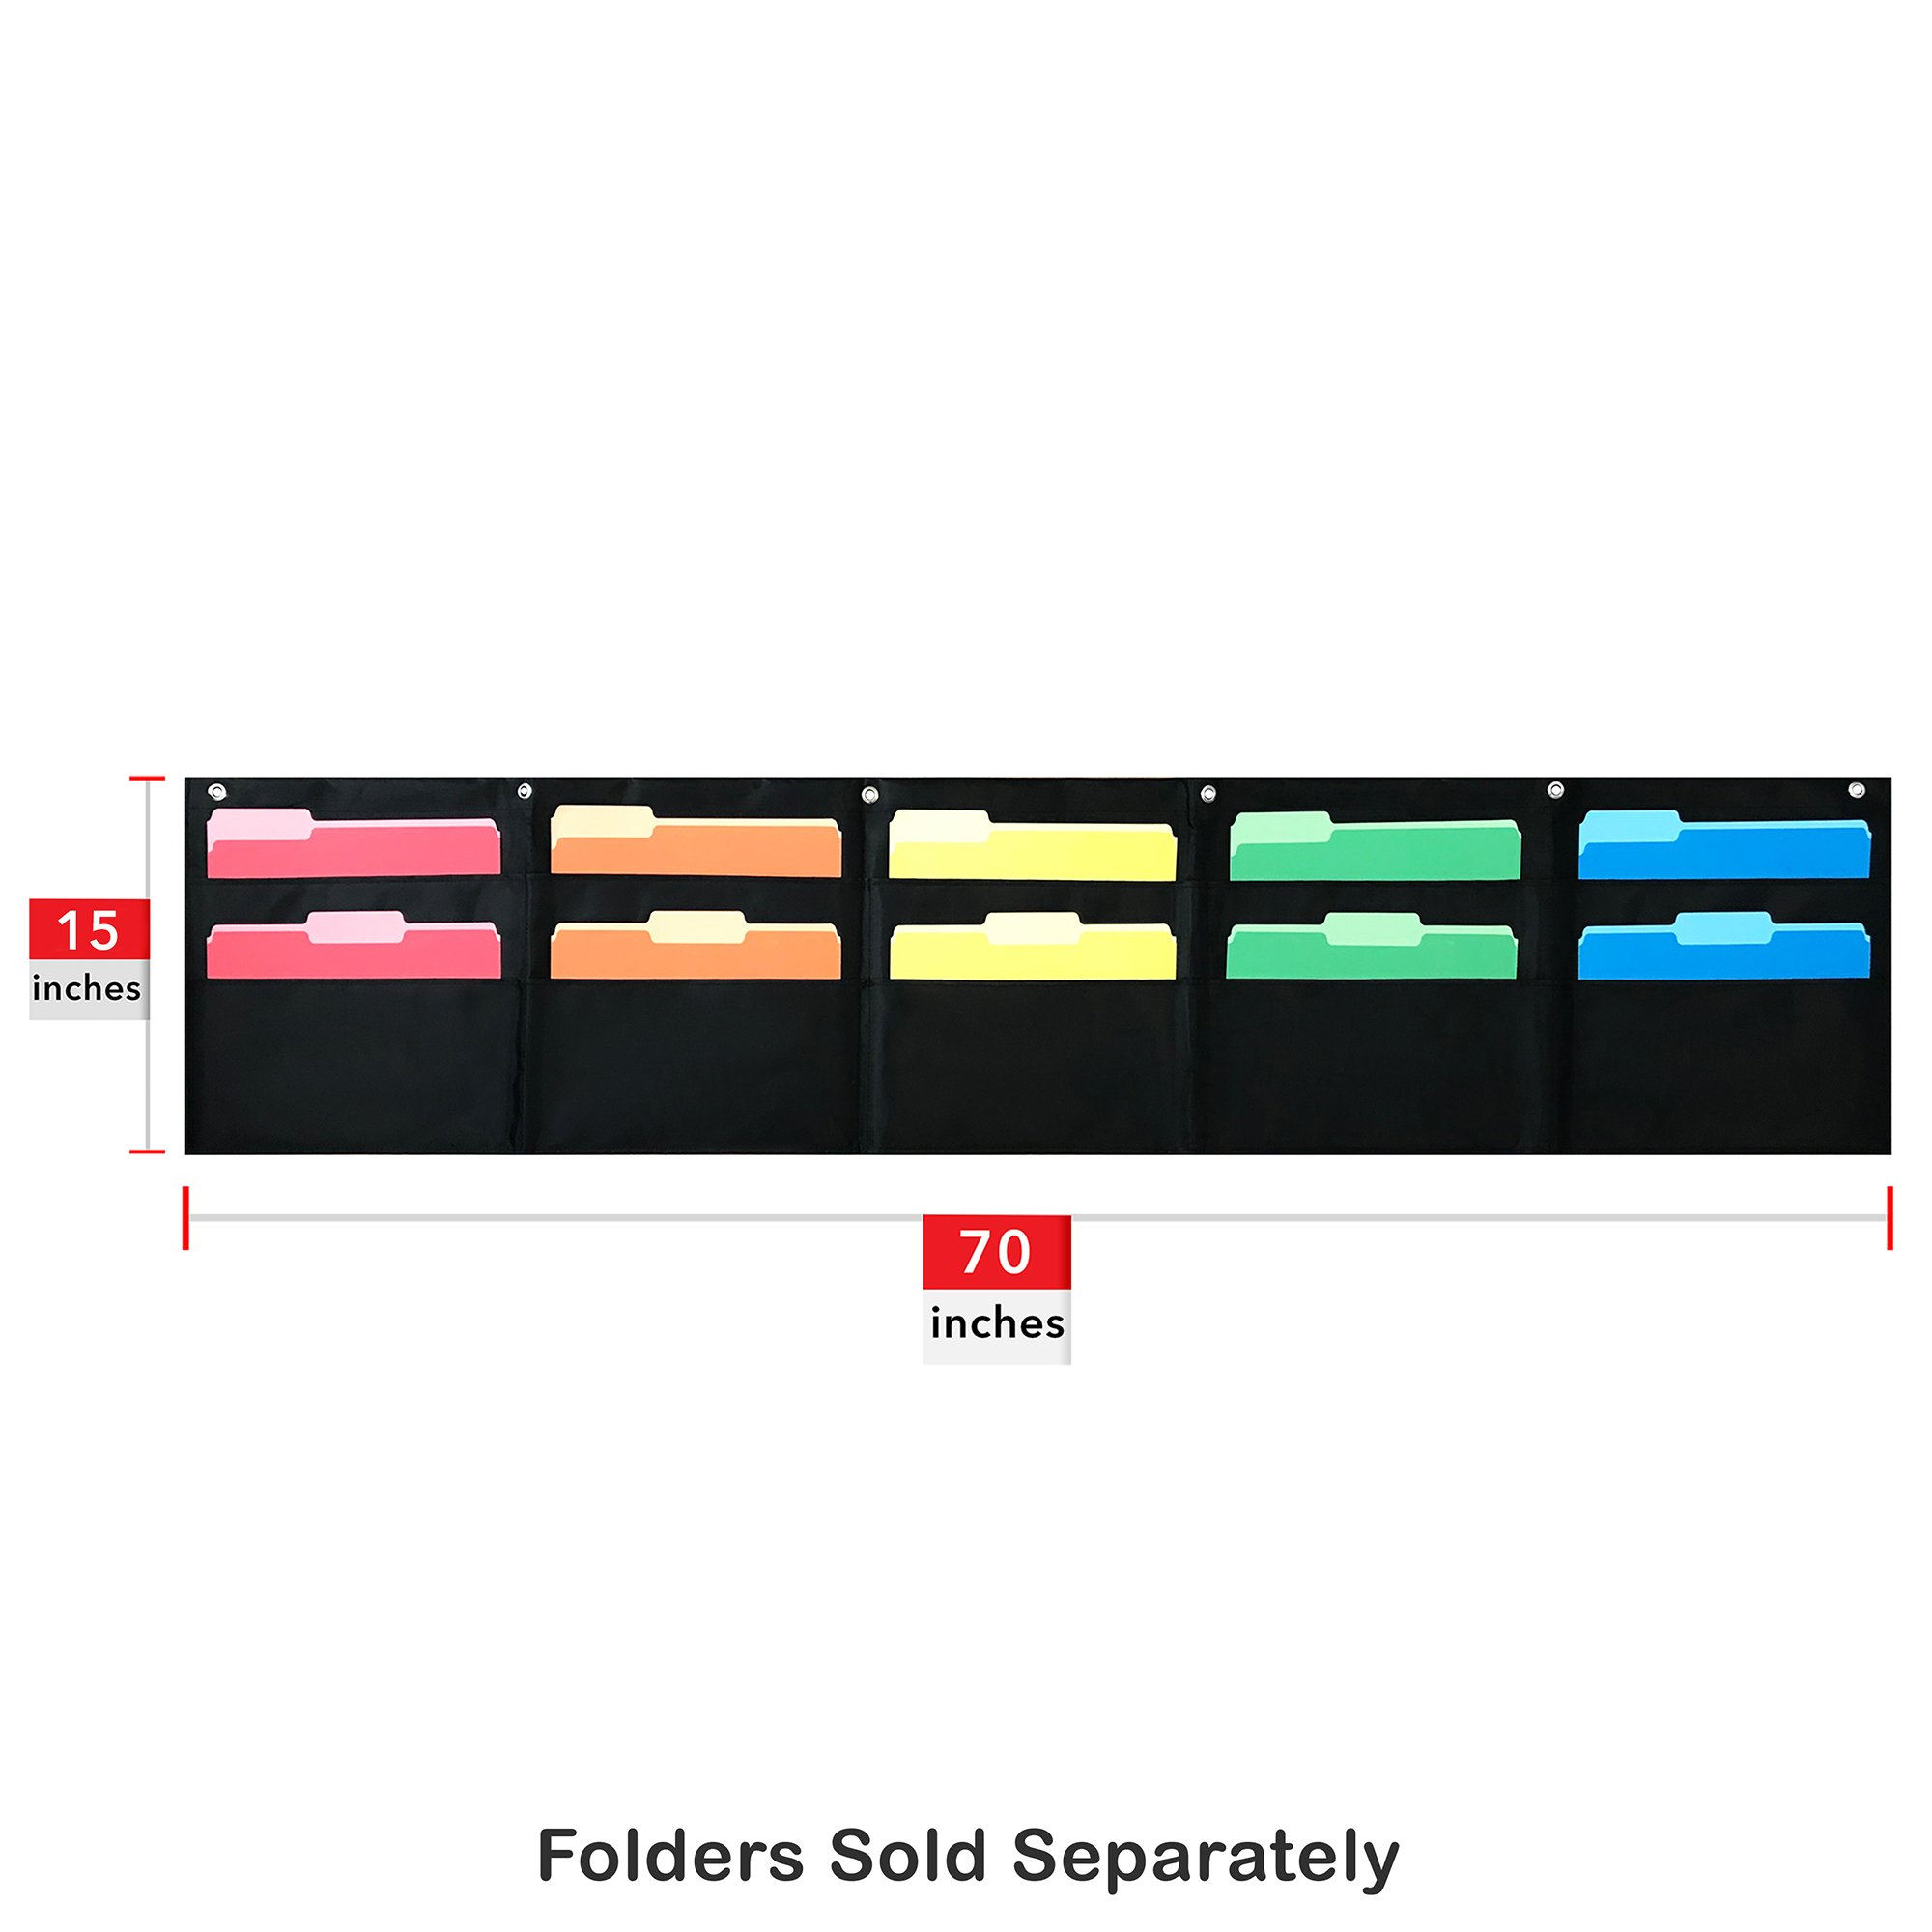 10 Pocket Horizontal Storage Pocket Chart, Hanging Wall File Organizer by Essex Wares - Organize Your Assignments, Files, Scrapbook Papers & More (Black) by Essex Wares (Image #1)